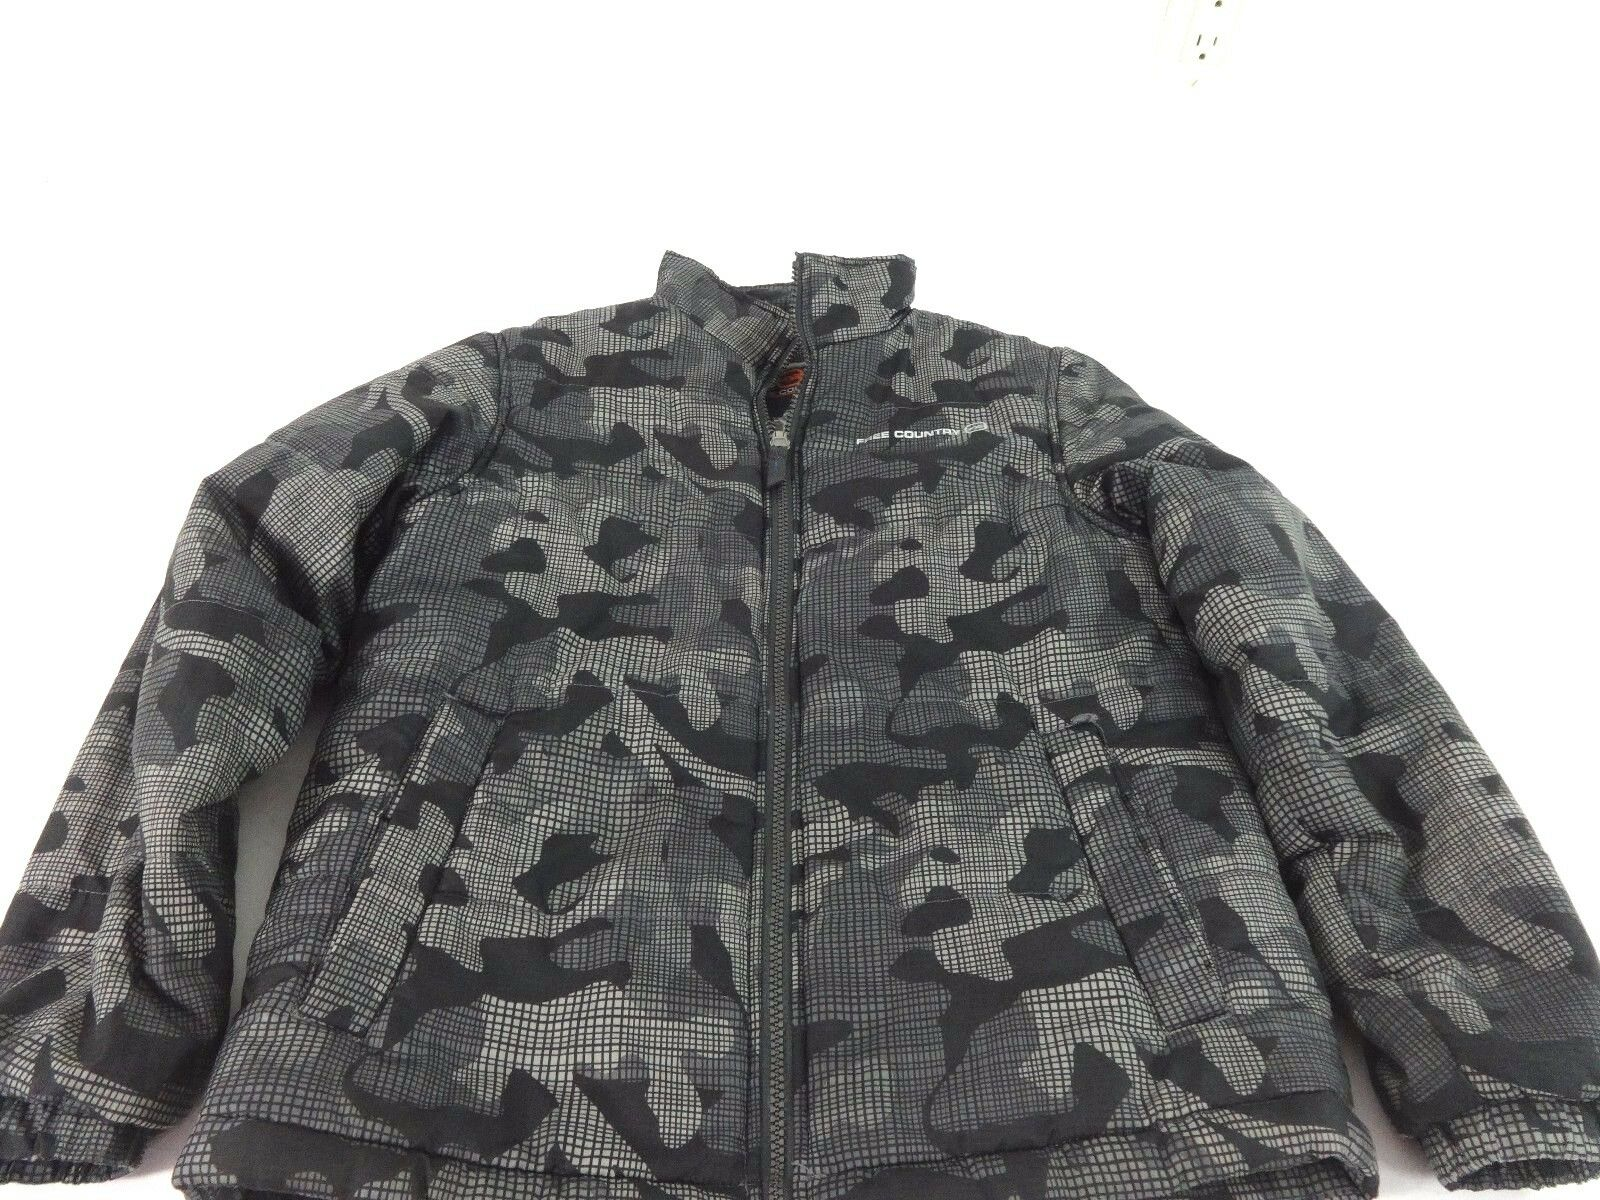 ea377def8f5d FREE COUNTRY BOYS BLACK  amp  GRAY DIGITAL CAMOUFLAGE POLYESTER SKI ...